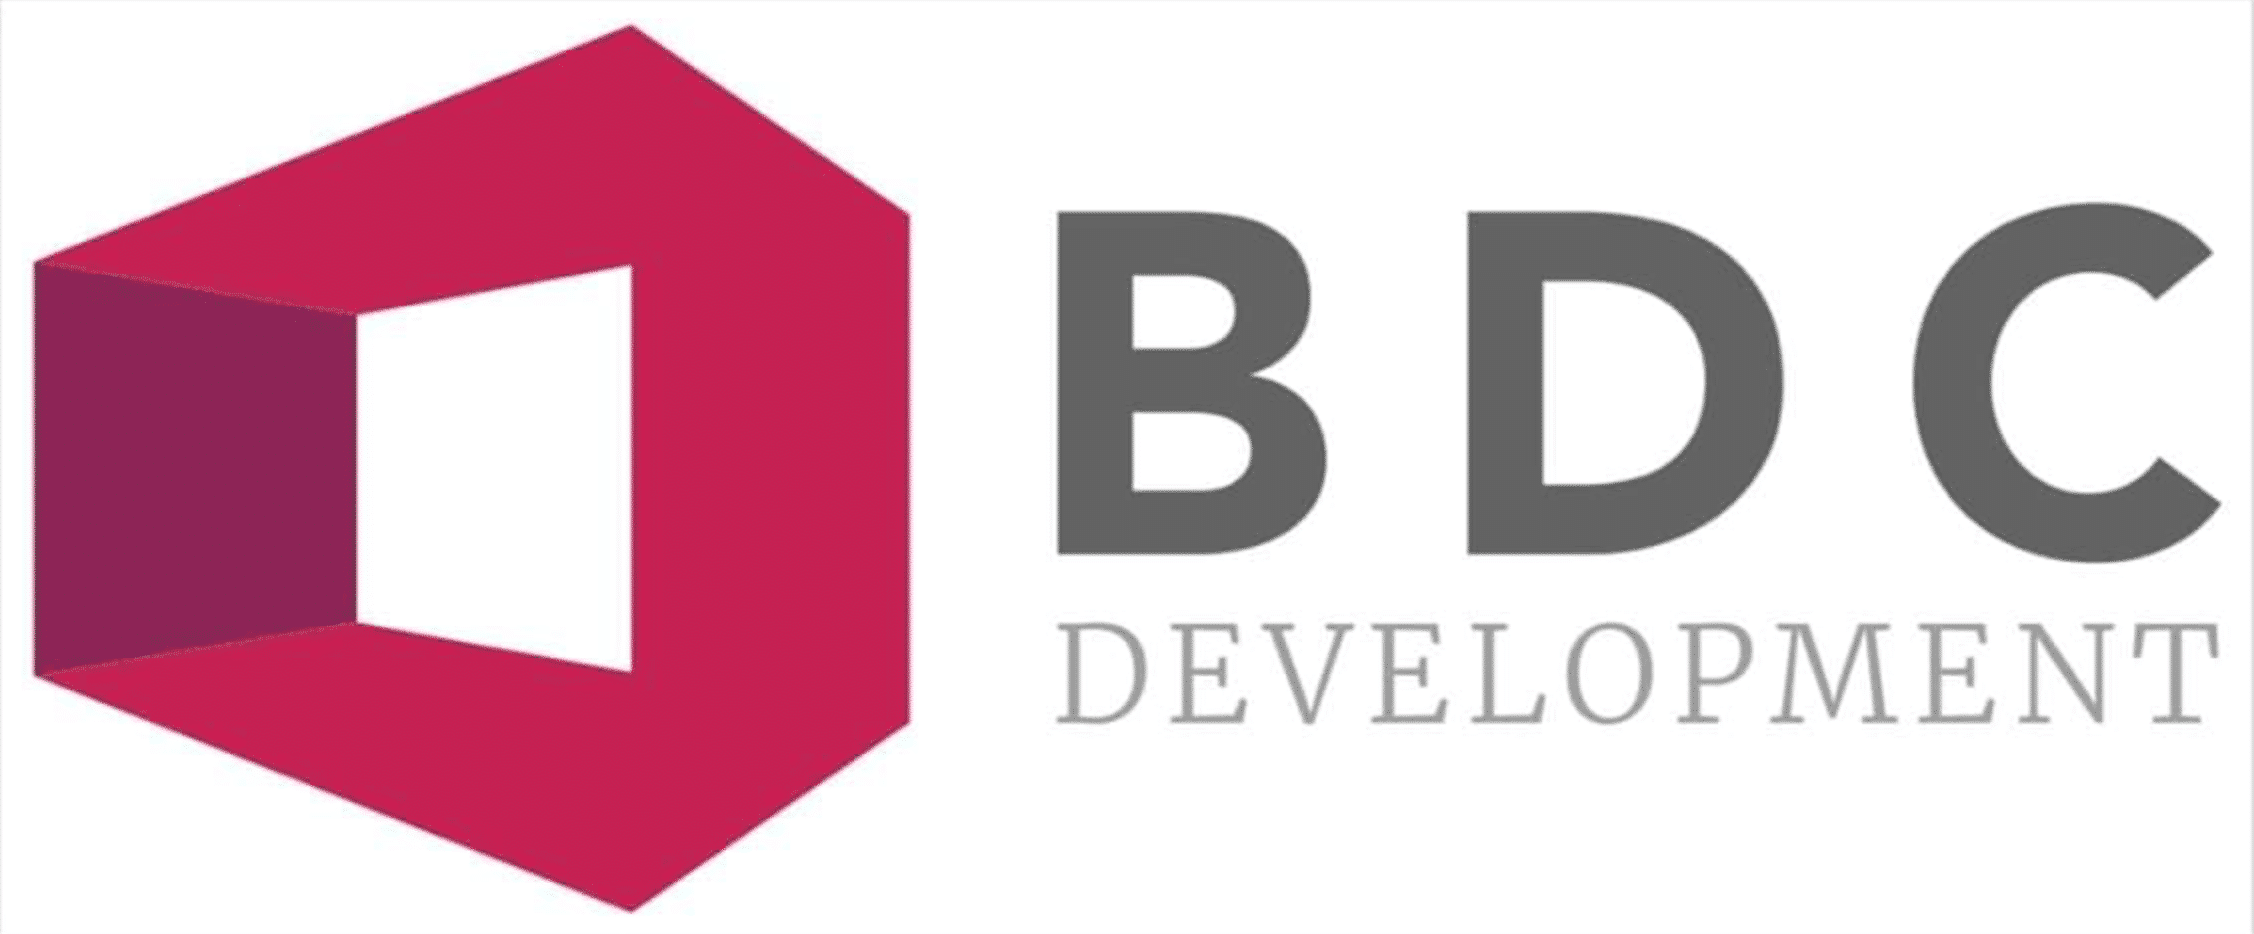 BDC DEVELOPEMENT